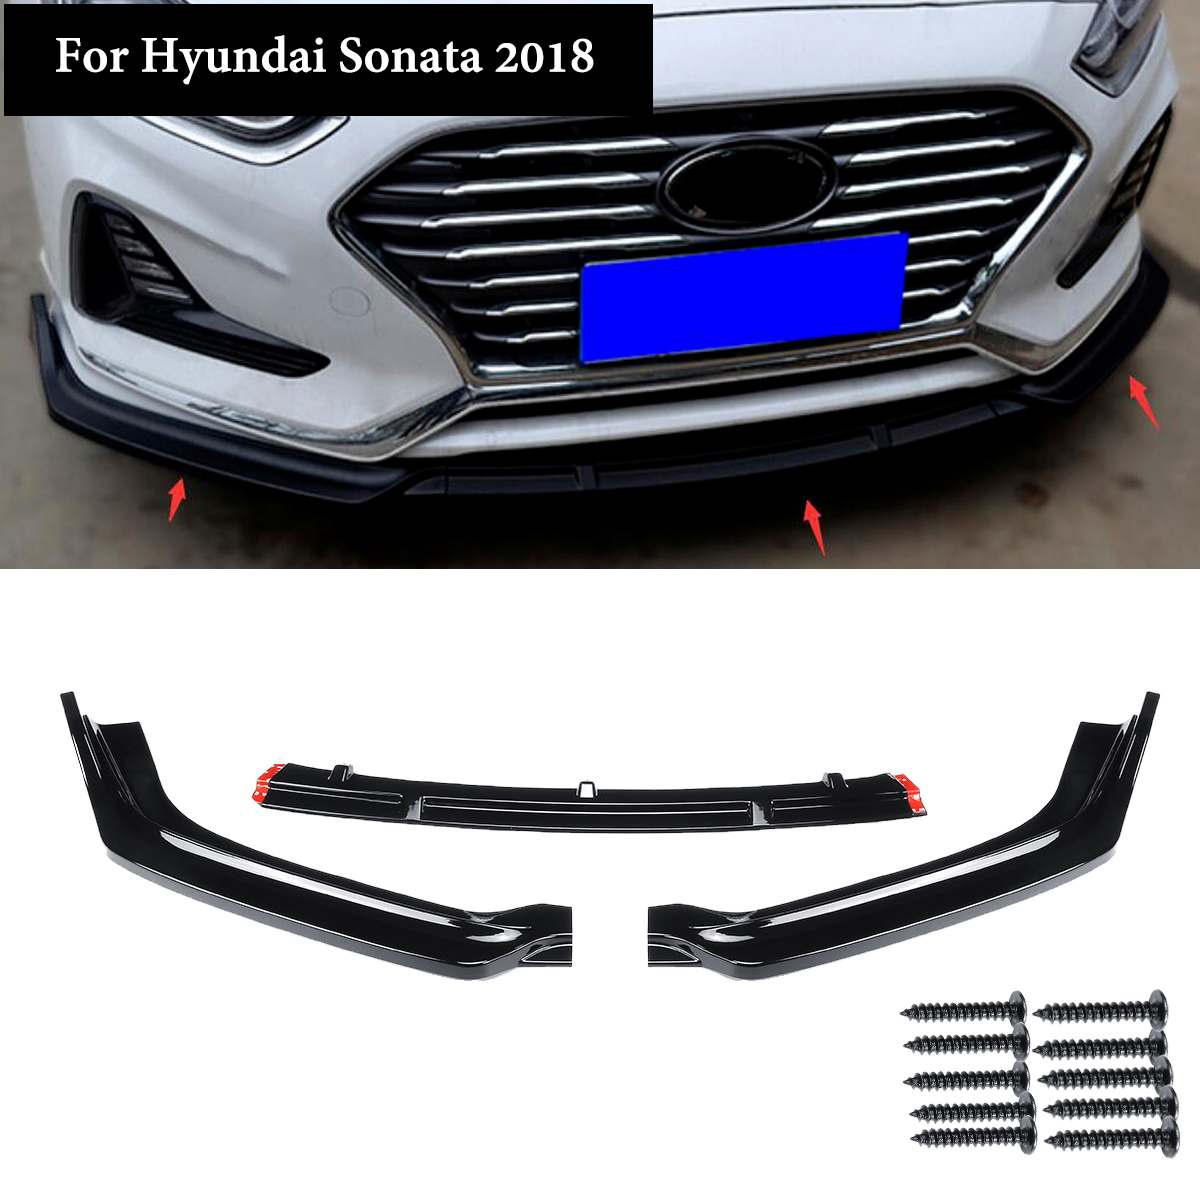 New 1 Set Car Front Bumper Lip Cover Auto Exterior Parts 3pcs Gloss Black Front Bumper Trim for Hyundai Sonata Hybrid 2018